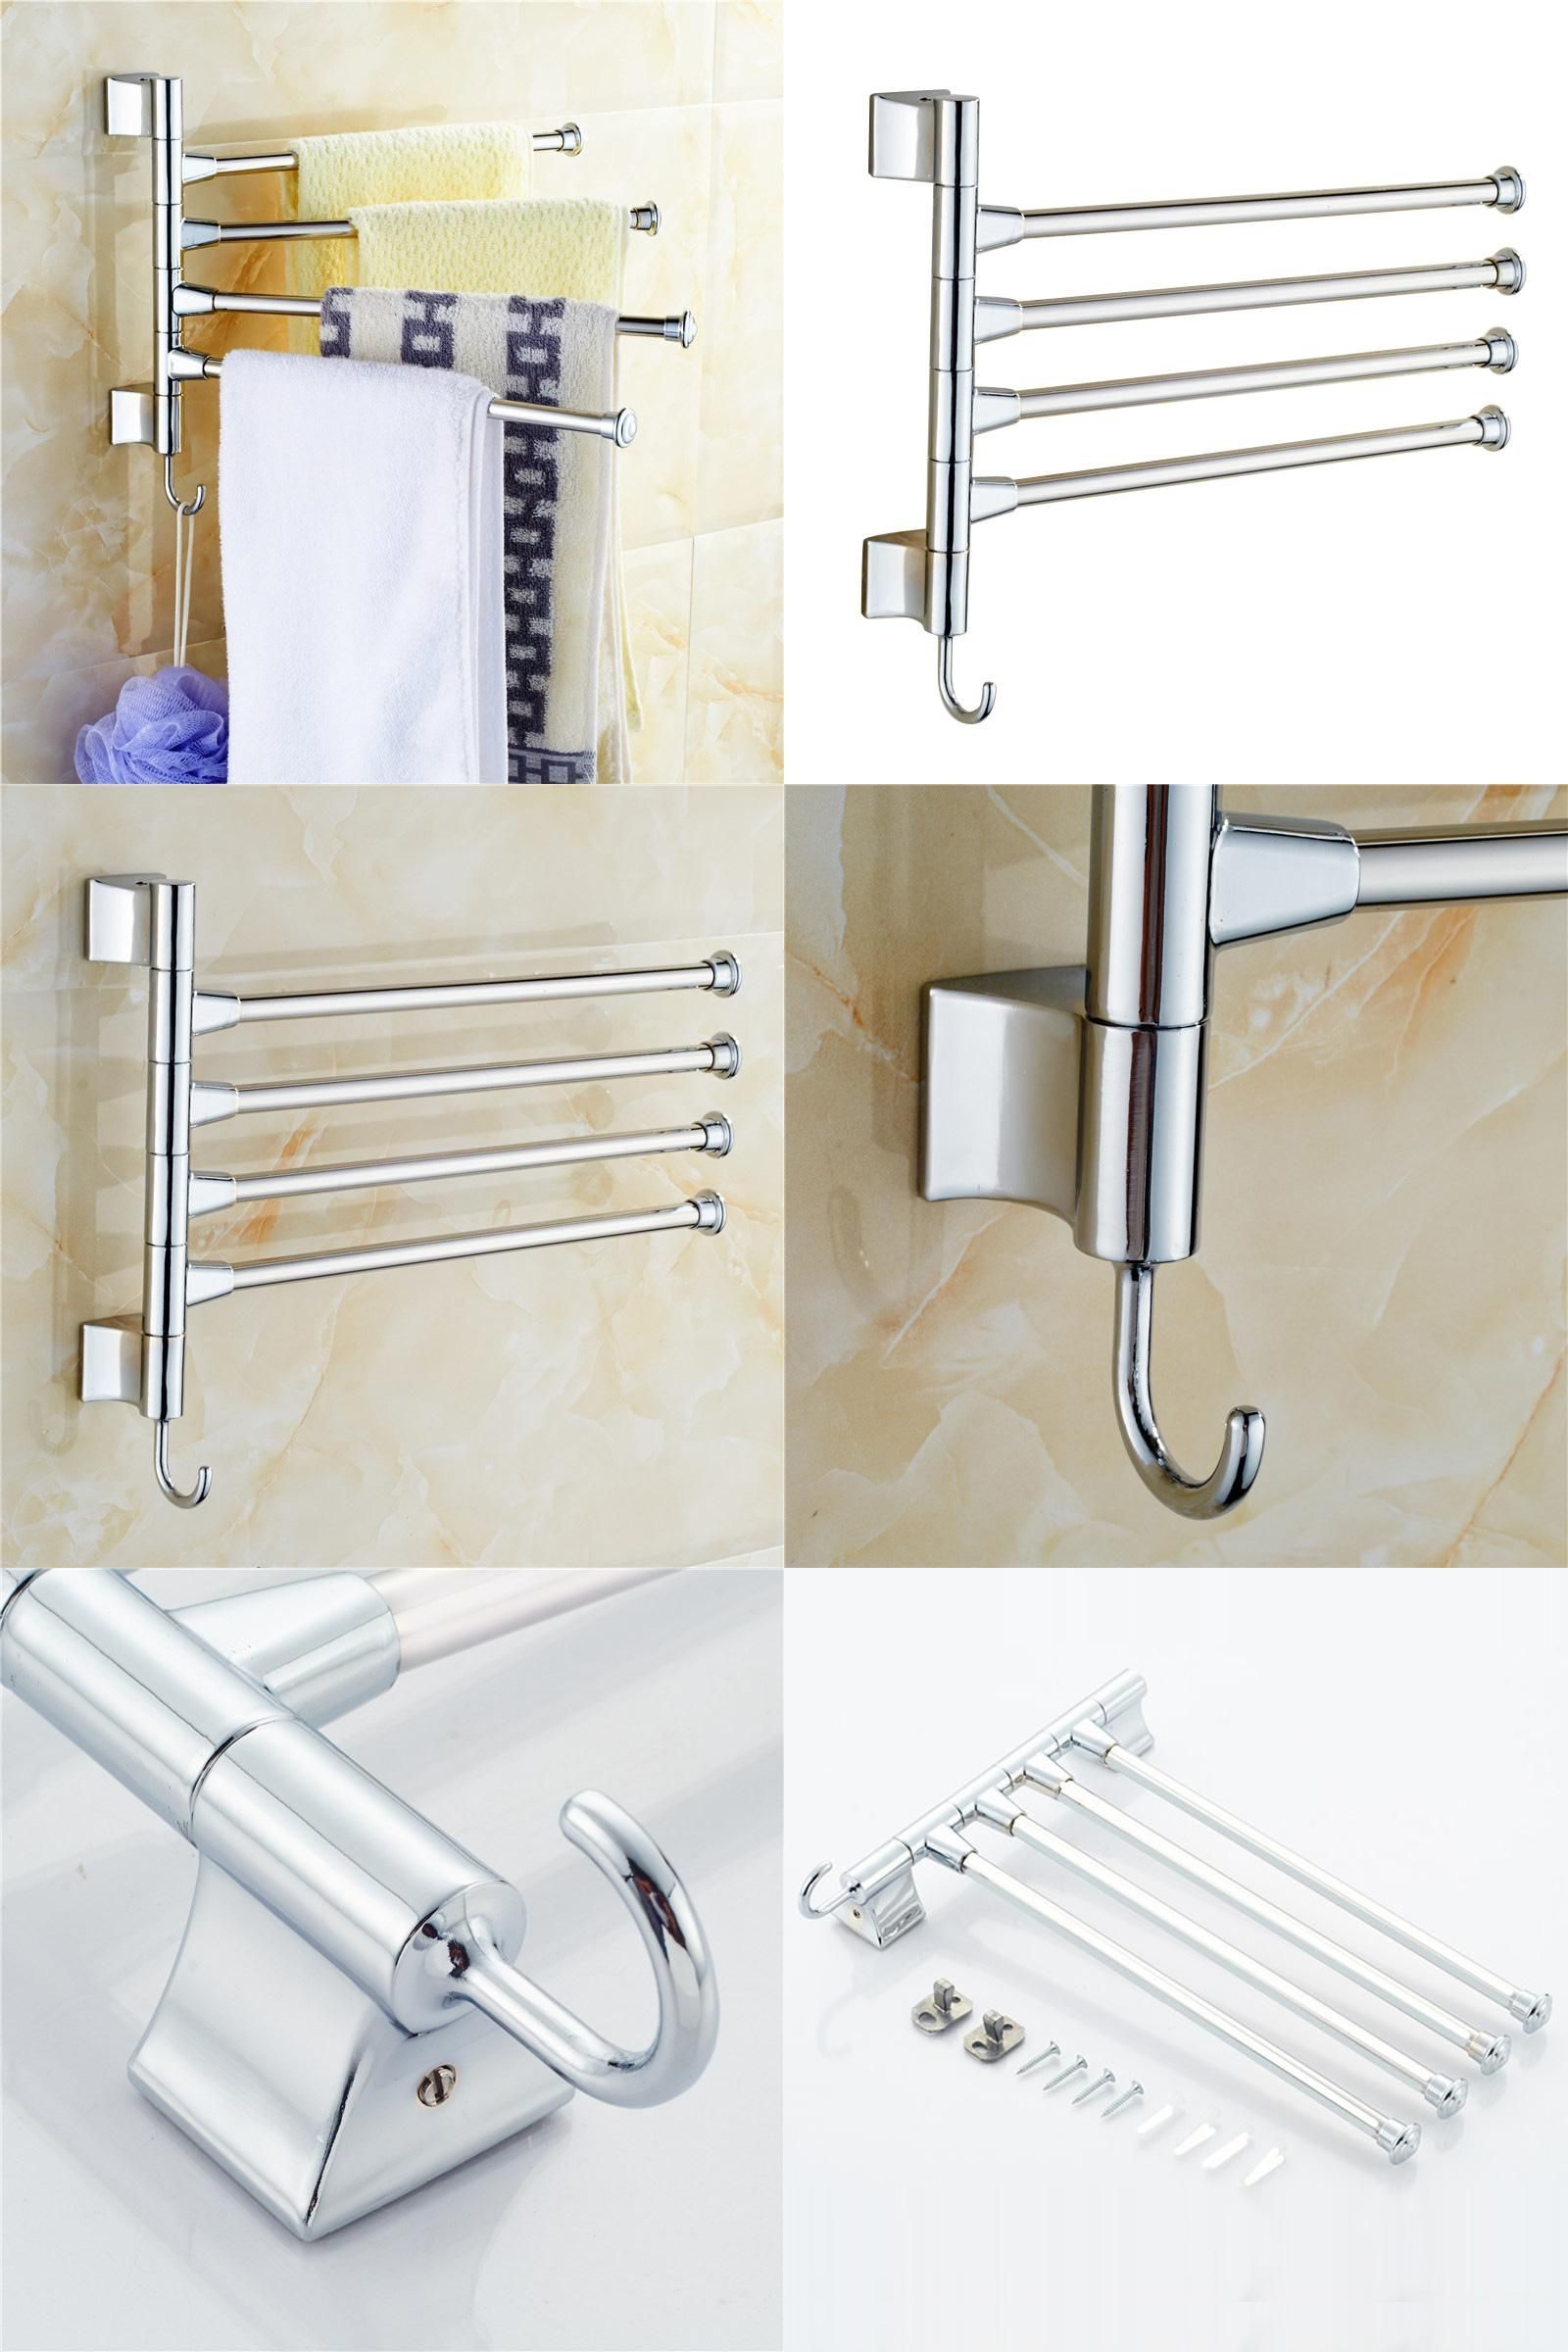 racks lovely rack that top ra look for towel ideas lush wall standing brass floor mounted free bar chrome image bathroom